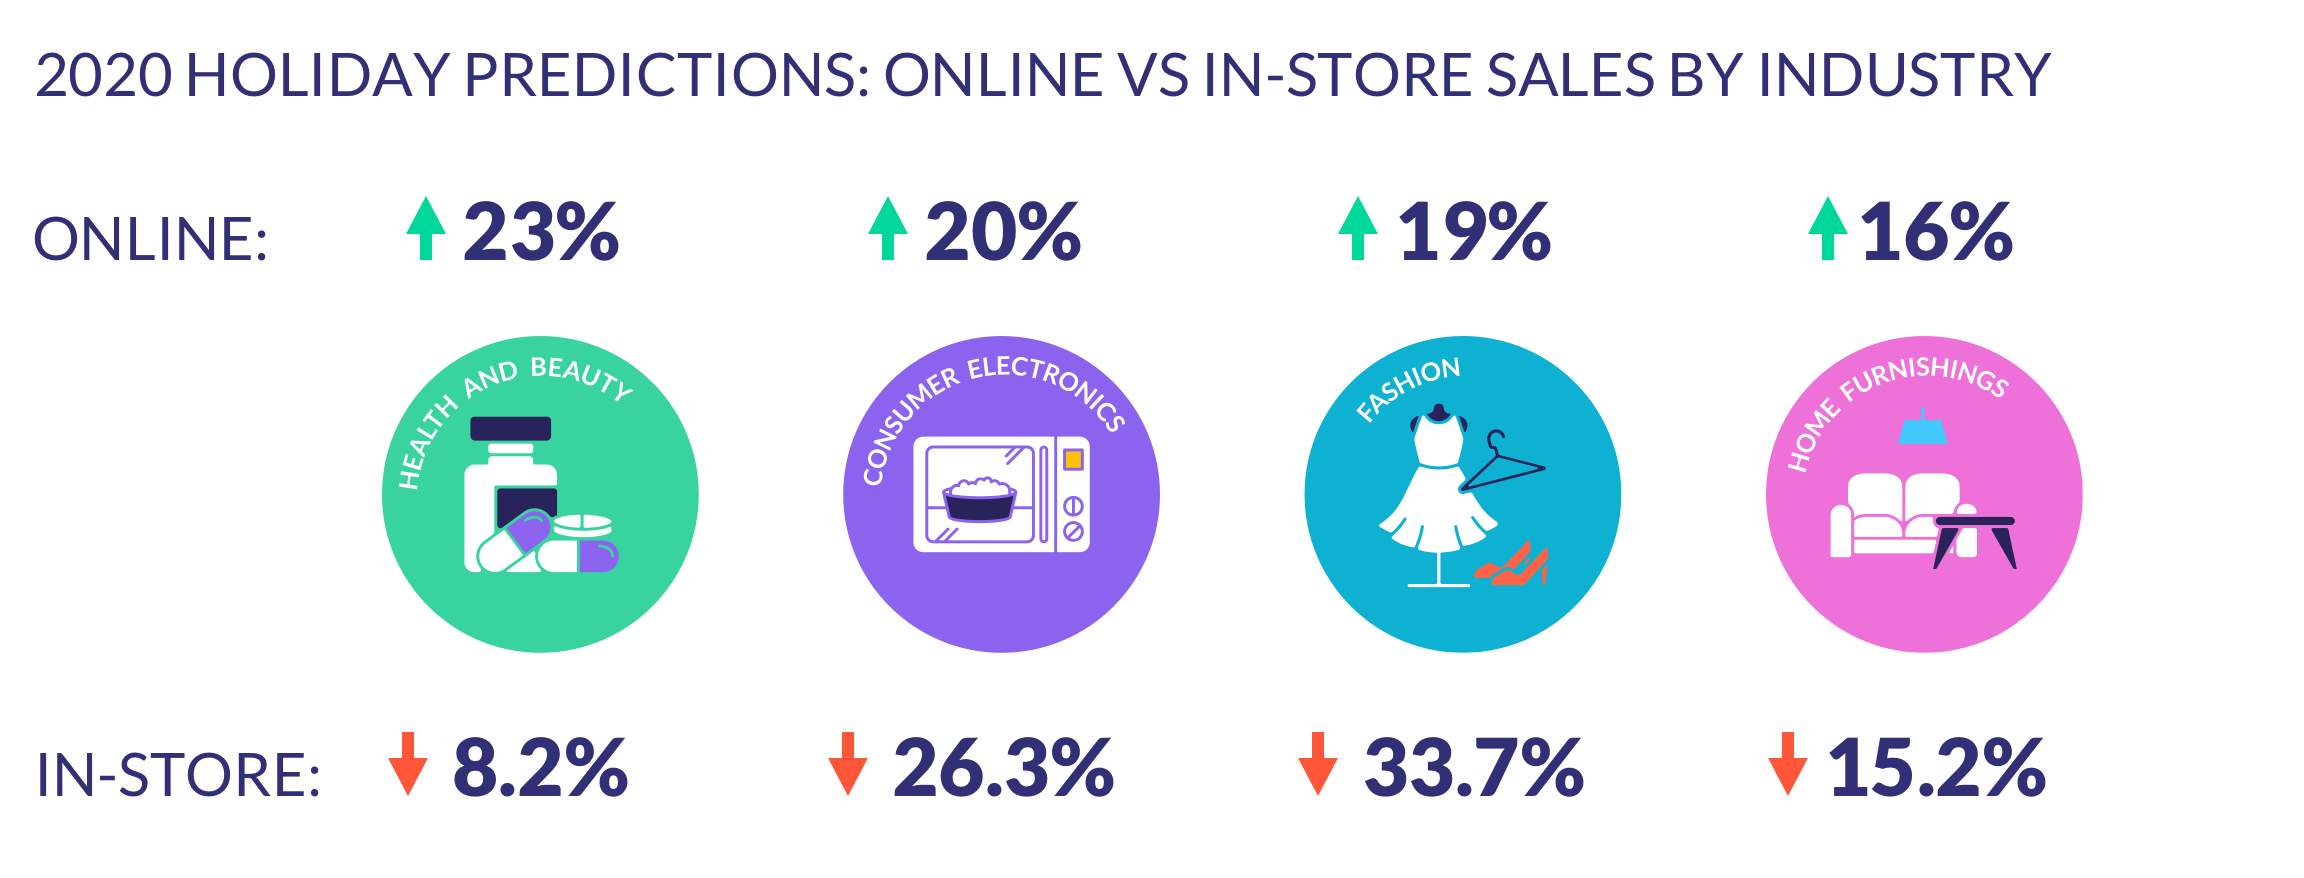 holiday sales predictions by industry